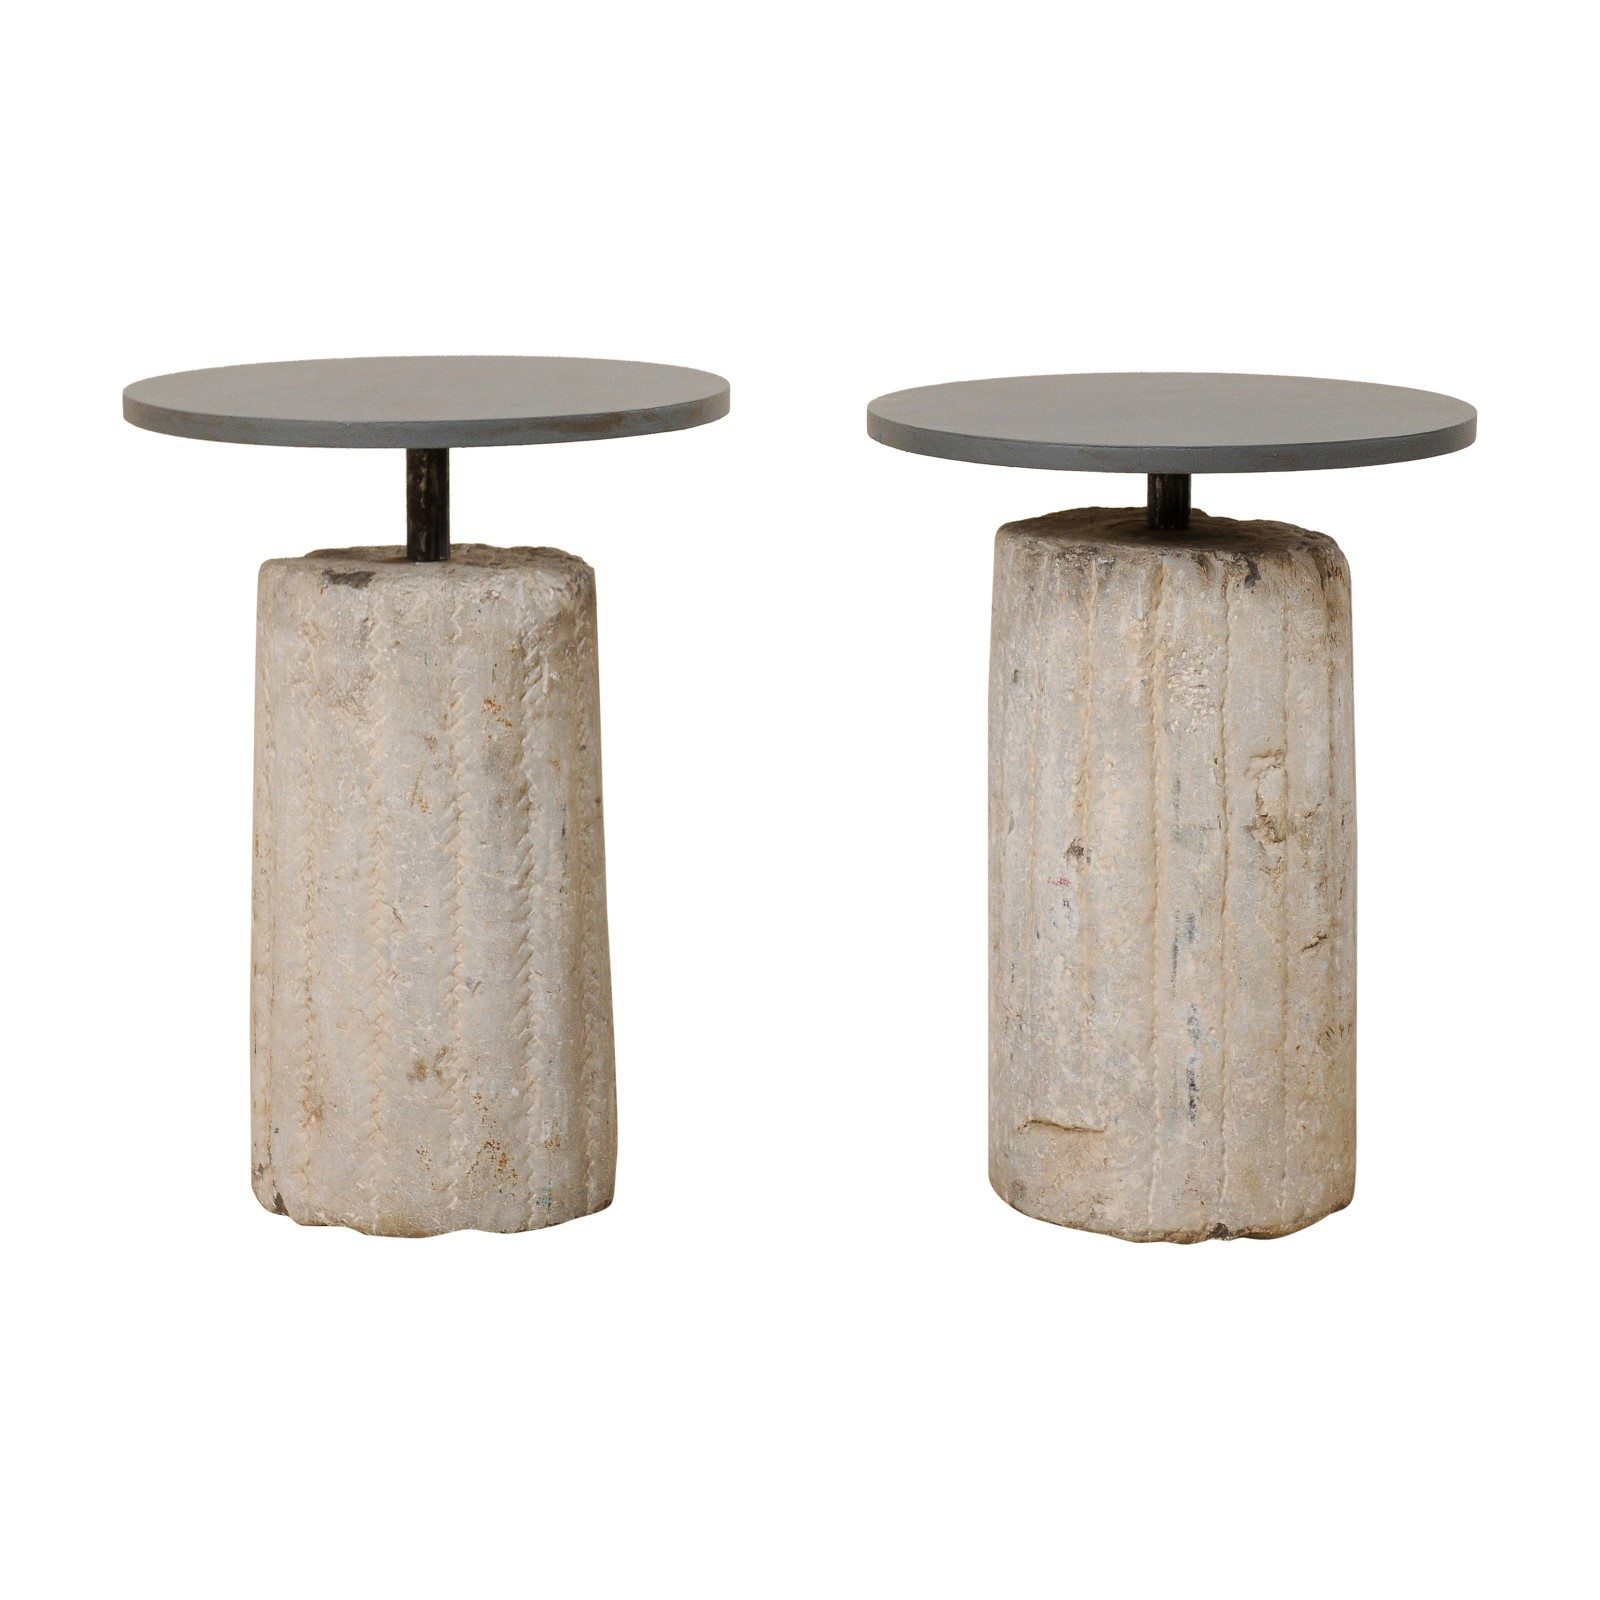 Side Tables w/18th C. Grinding Stone Bases